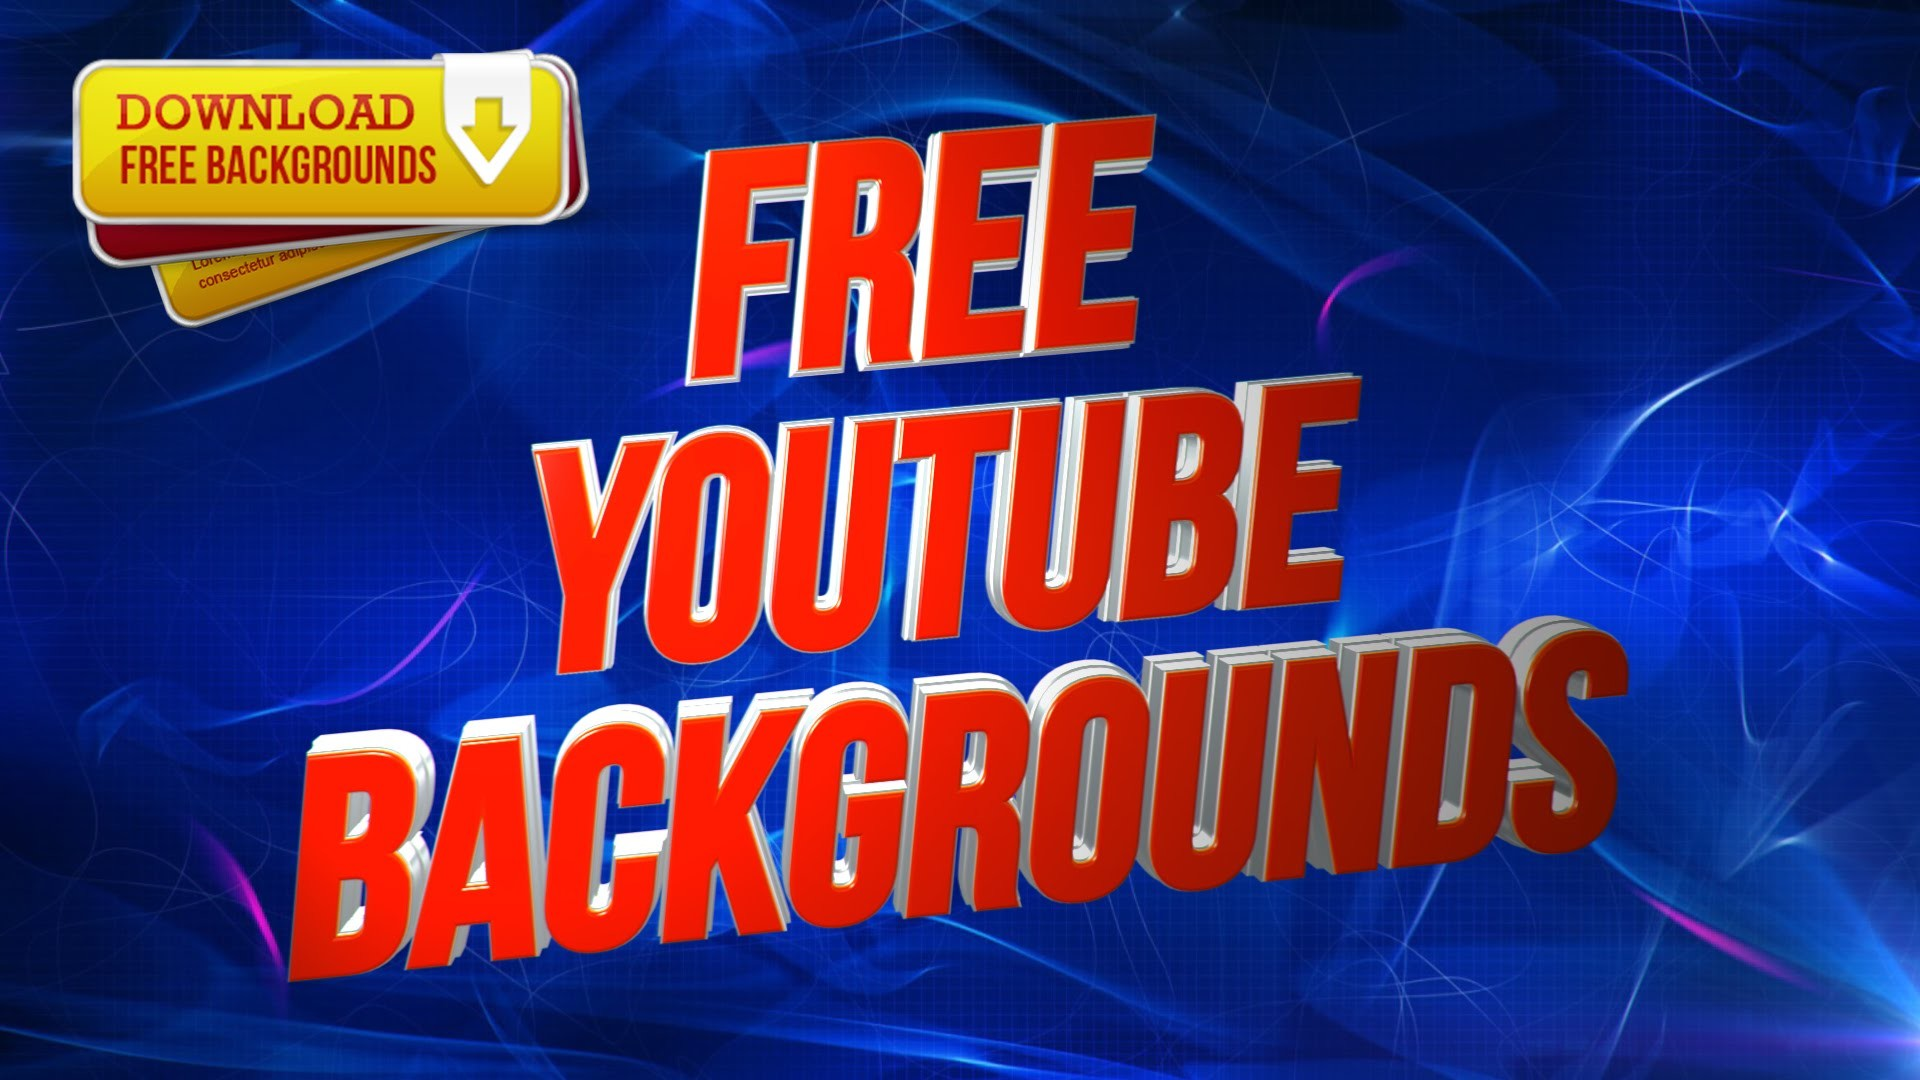 GIVEAWAY: Free Youtube Backgrounds! Channel Banners   Â¡Fondos Youtube  Gratis!   Gaming for Charity